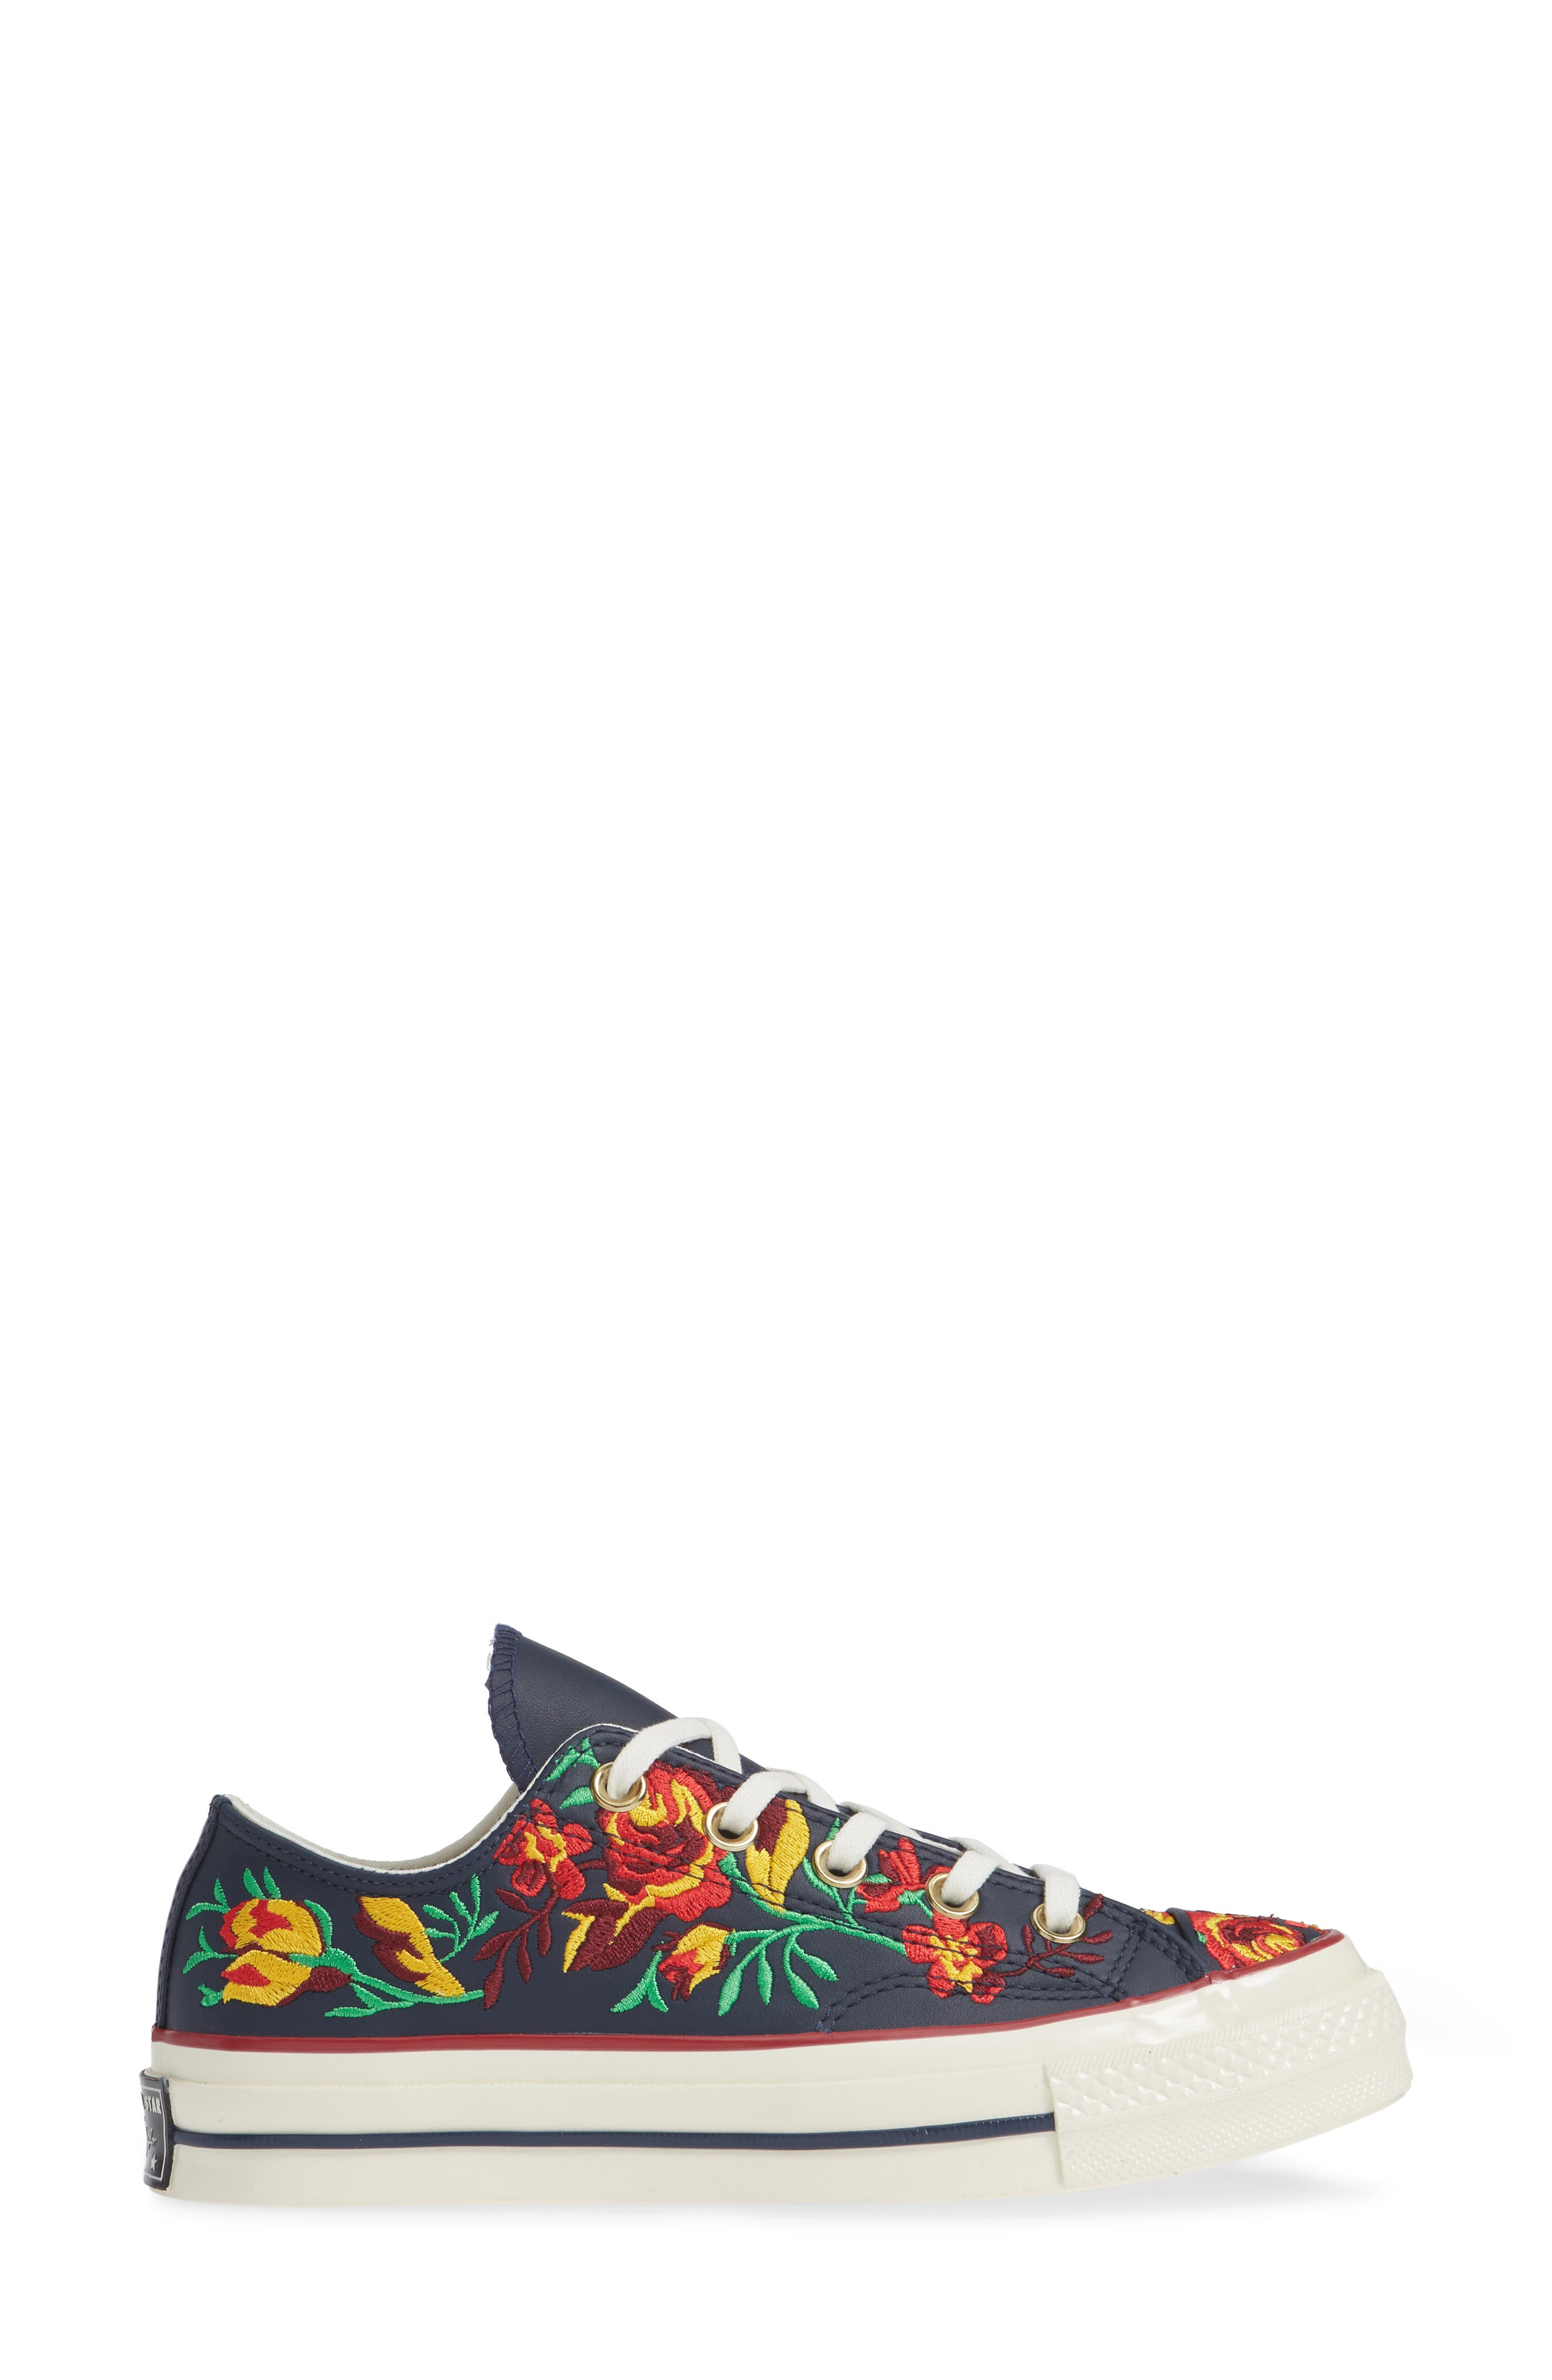 Chuck Taylor<sup>®</sup> All Star<sup>®</sup> Parkway Floral 70 Low Top Sneaker,                             Alternate thumbnail 3, color,                             OBSIDIAN/ CHERRY LEATHER